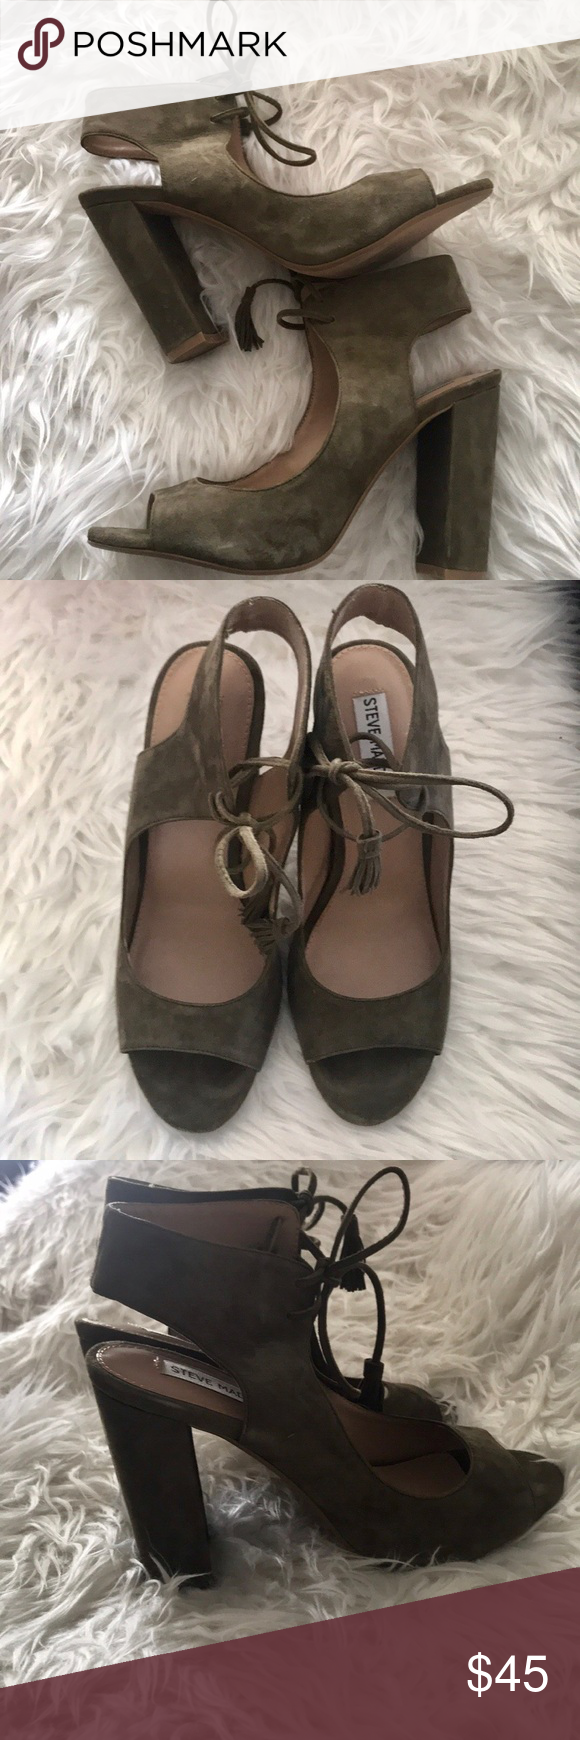 6bdd4667145 Steve Madden Heel Sandal Steve Madden Charlea Block Heel Sandal Very pretty  Olive Suede Tassels accent the ends of this tie front